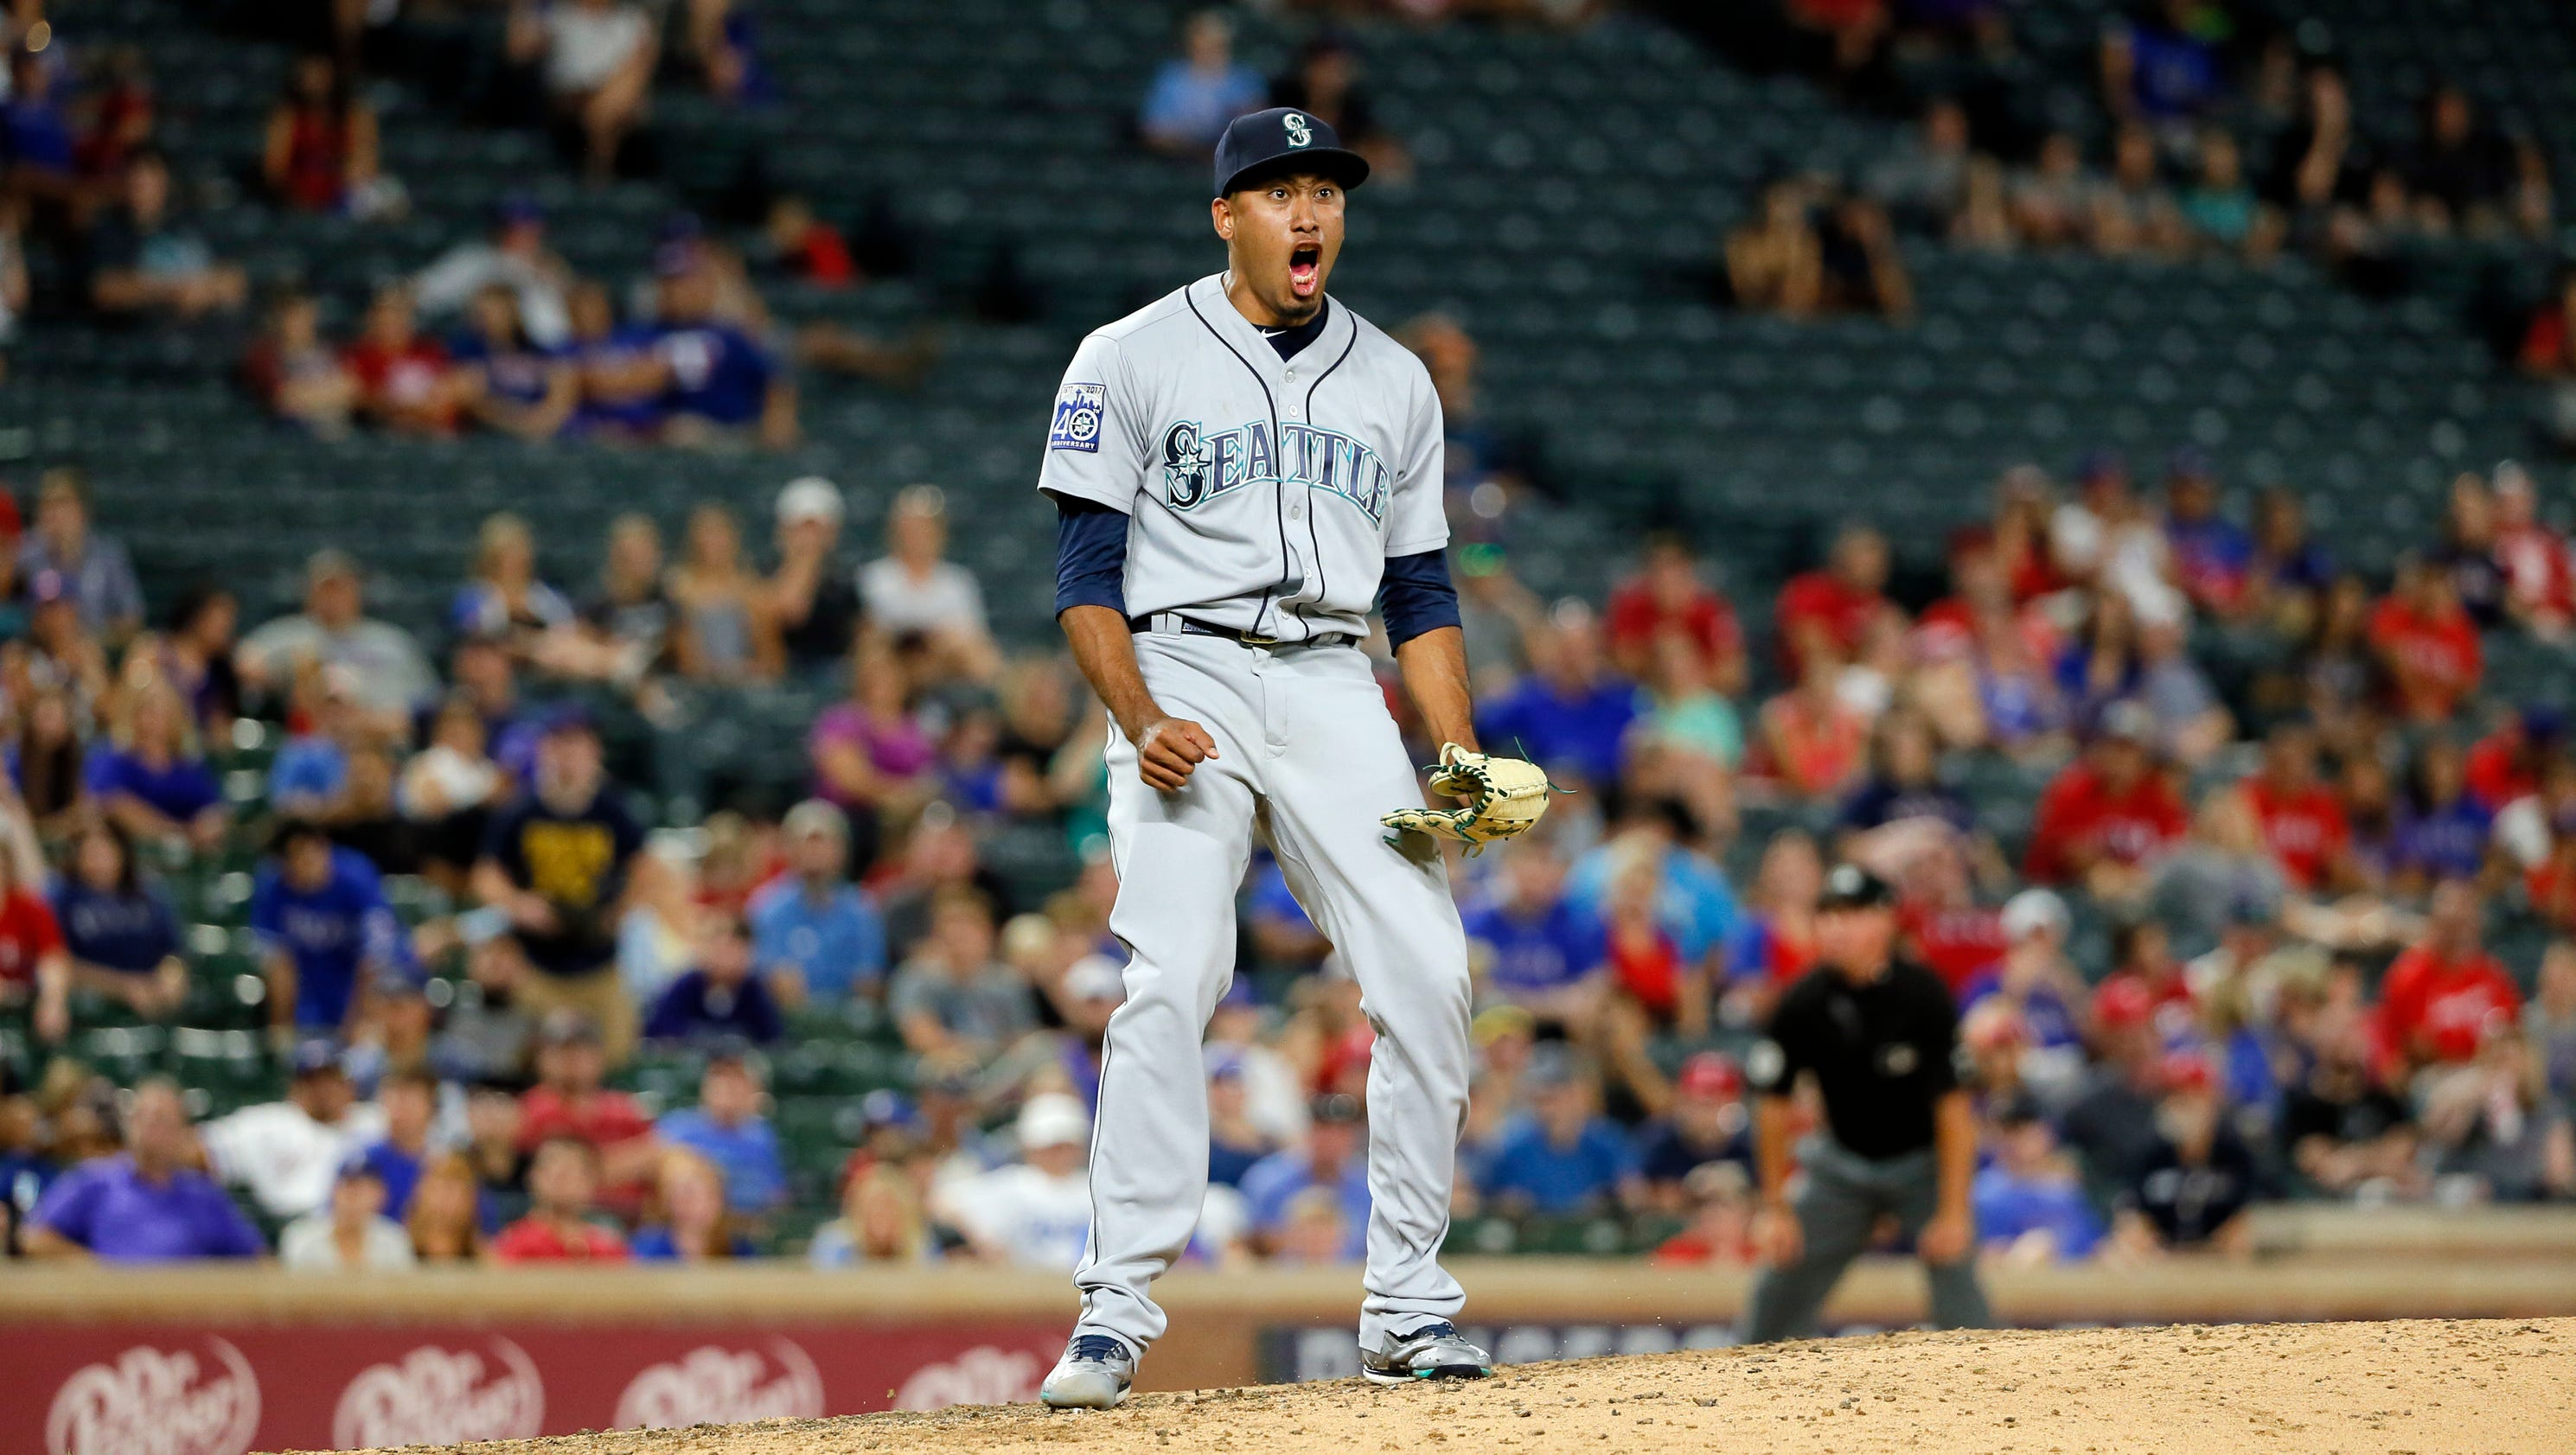 Mariners come back to beat Texas 6-4